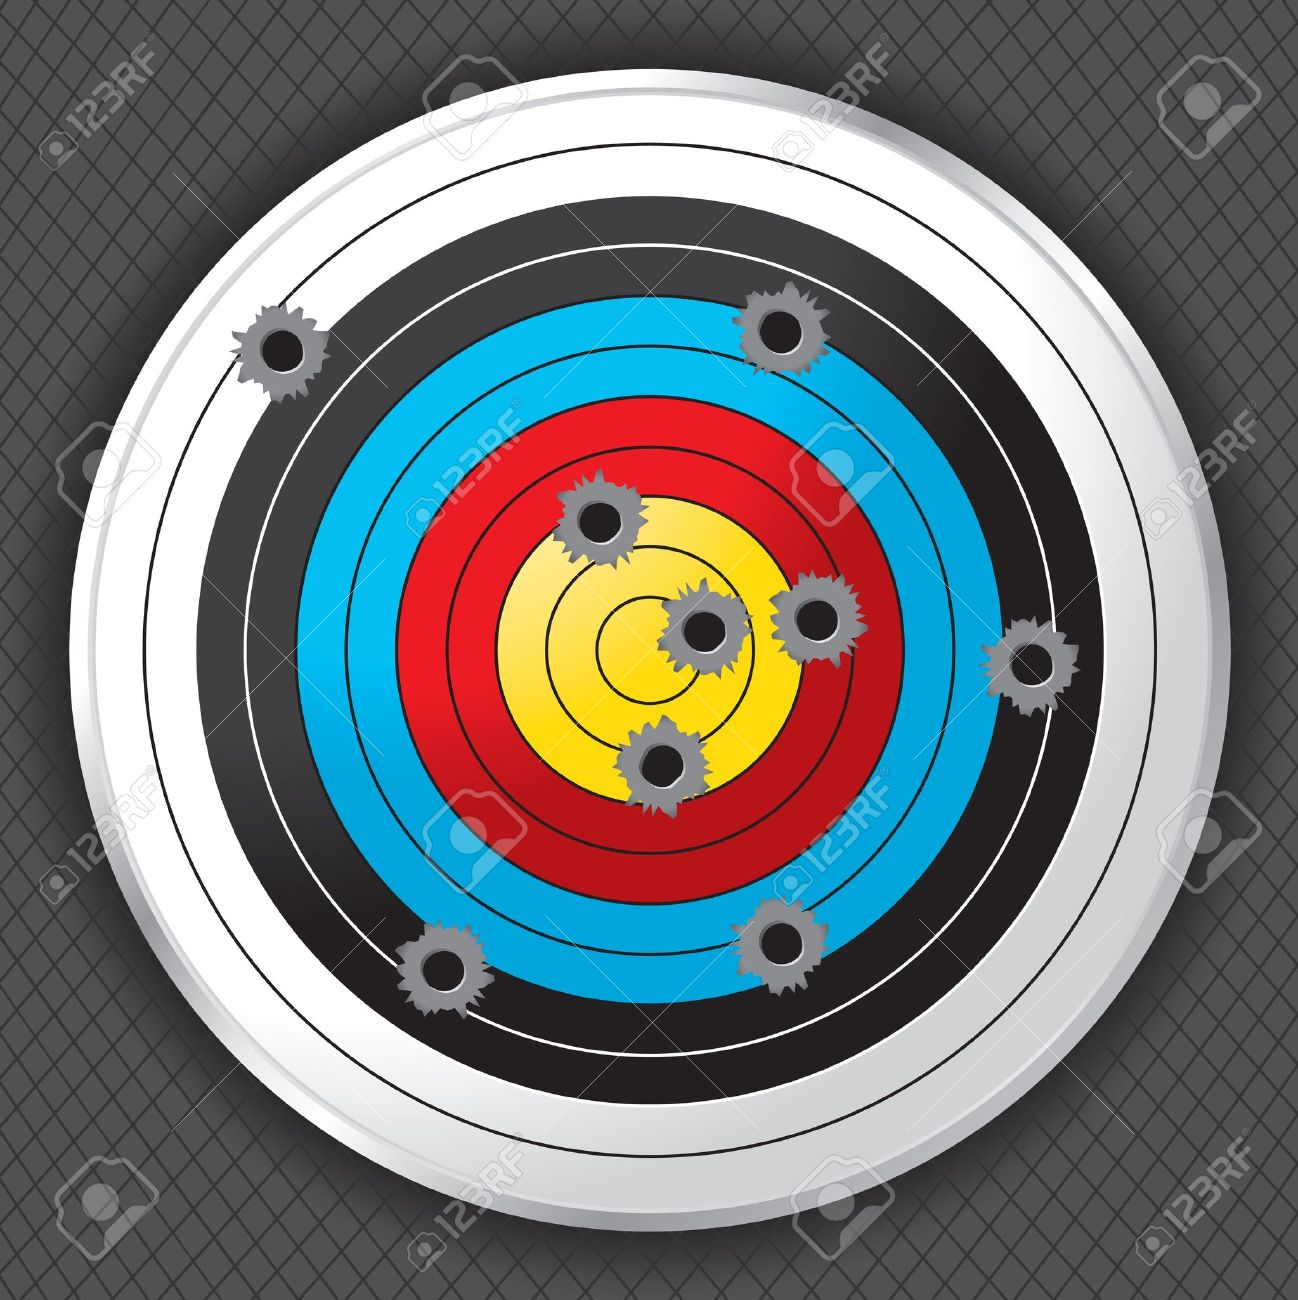 Shooting range target shot full of bullet holes  Bullet holes, target and background are layered for easy separation Stock Vector - 18084292